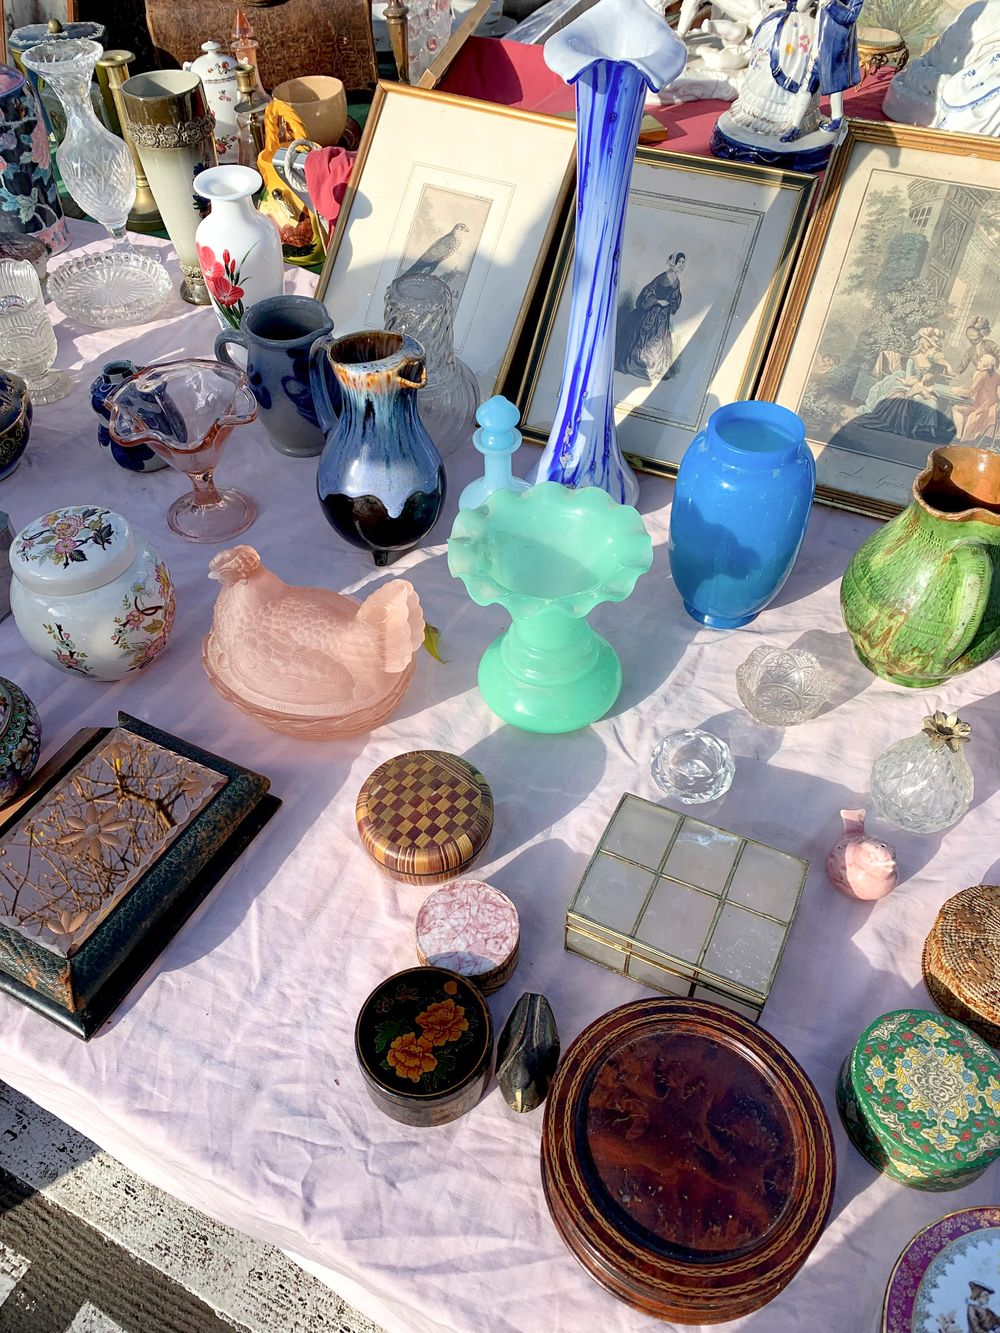 Les Puces De Vanves, Paris, France Flea Market